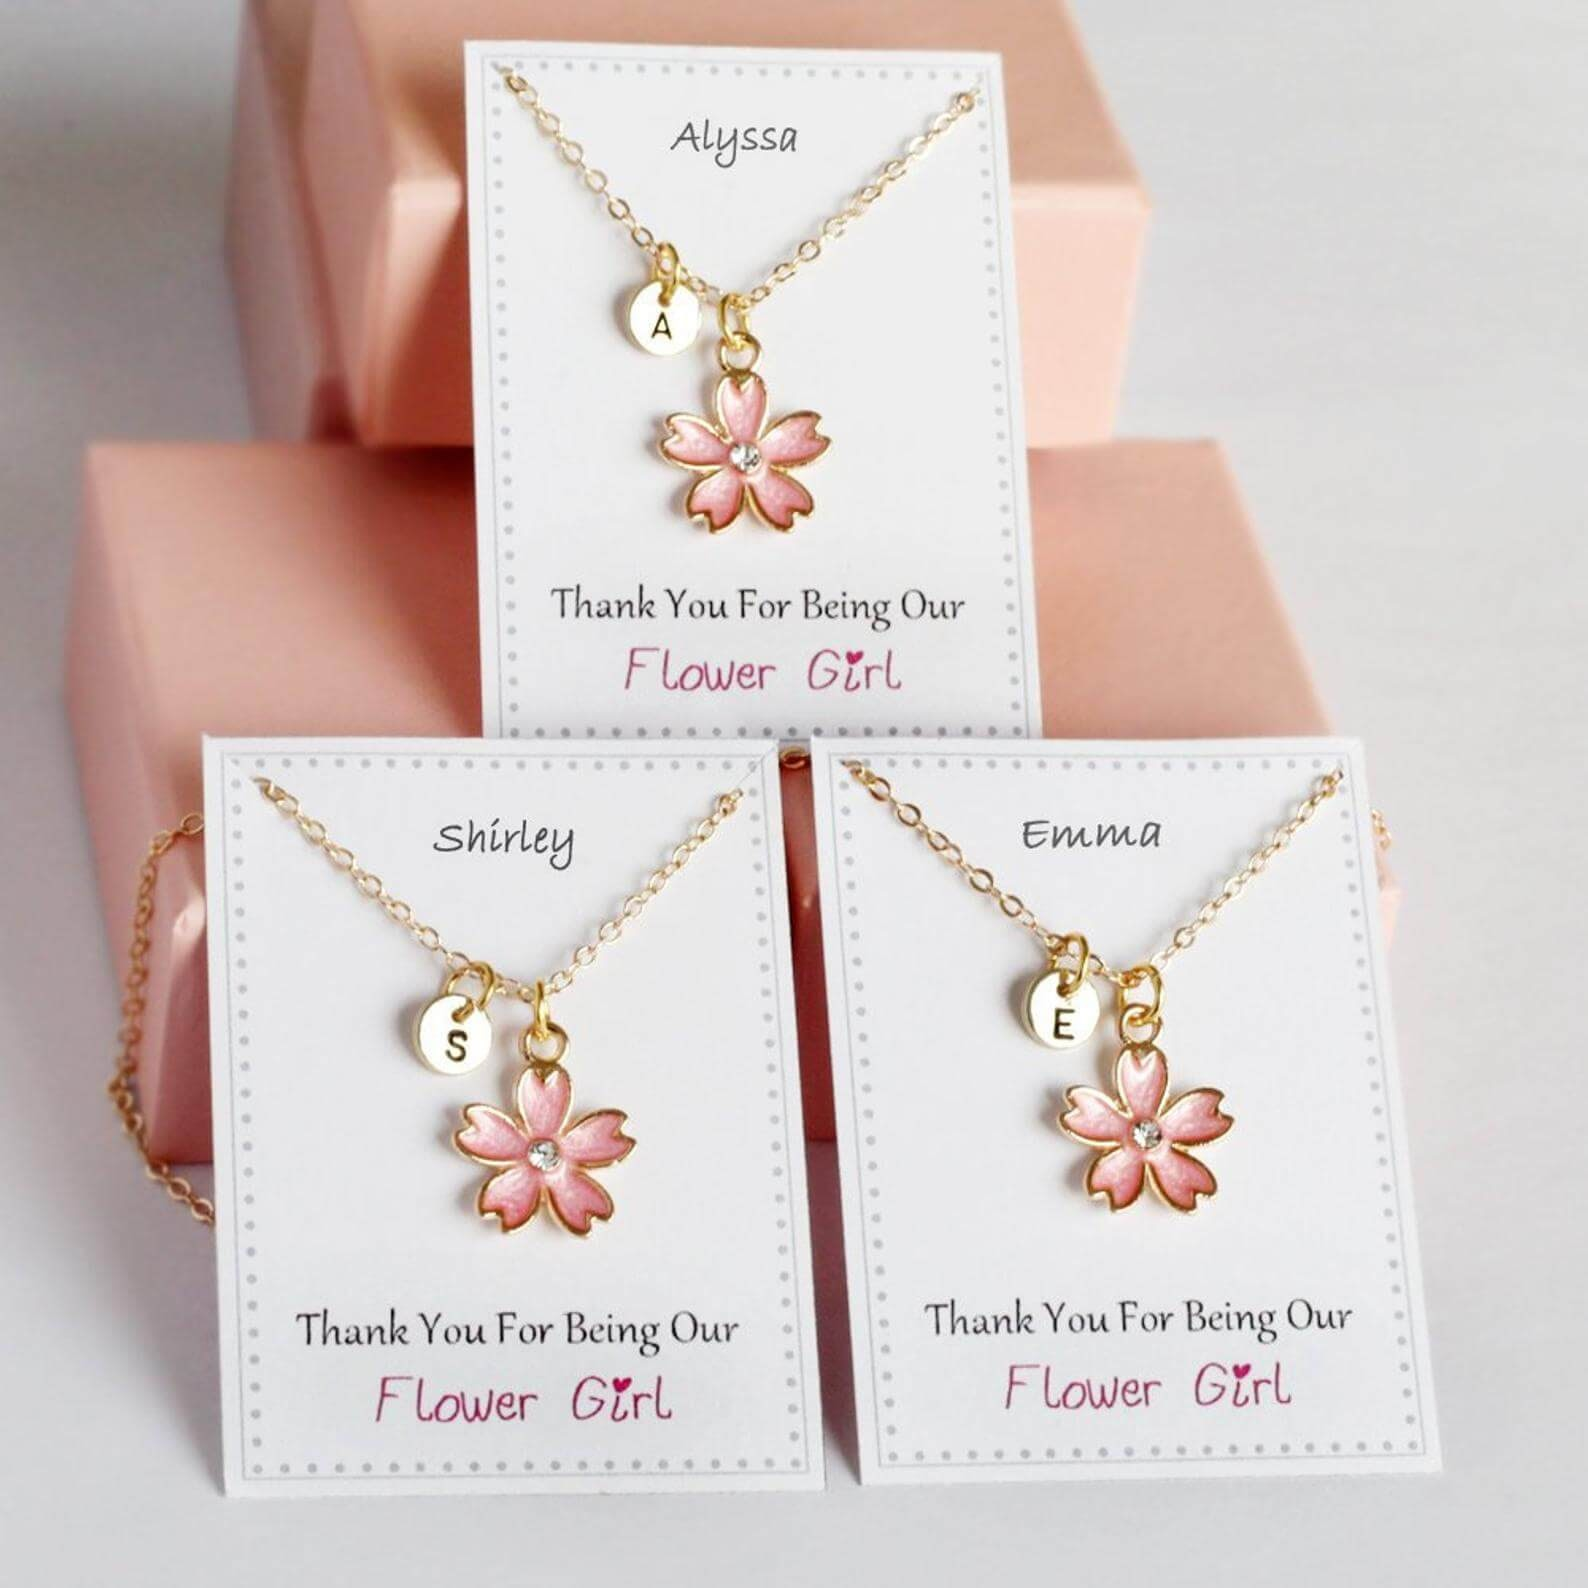 """Toddler bracelet with a flower on a display that says """"Thank you for being our flower girl"""""""